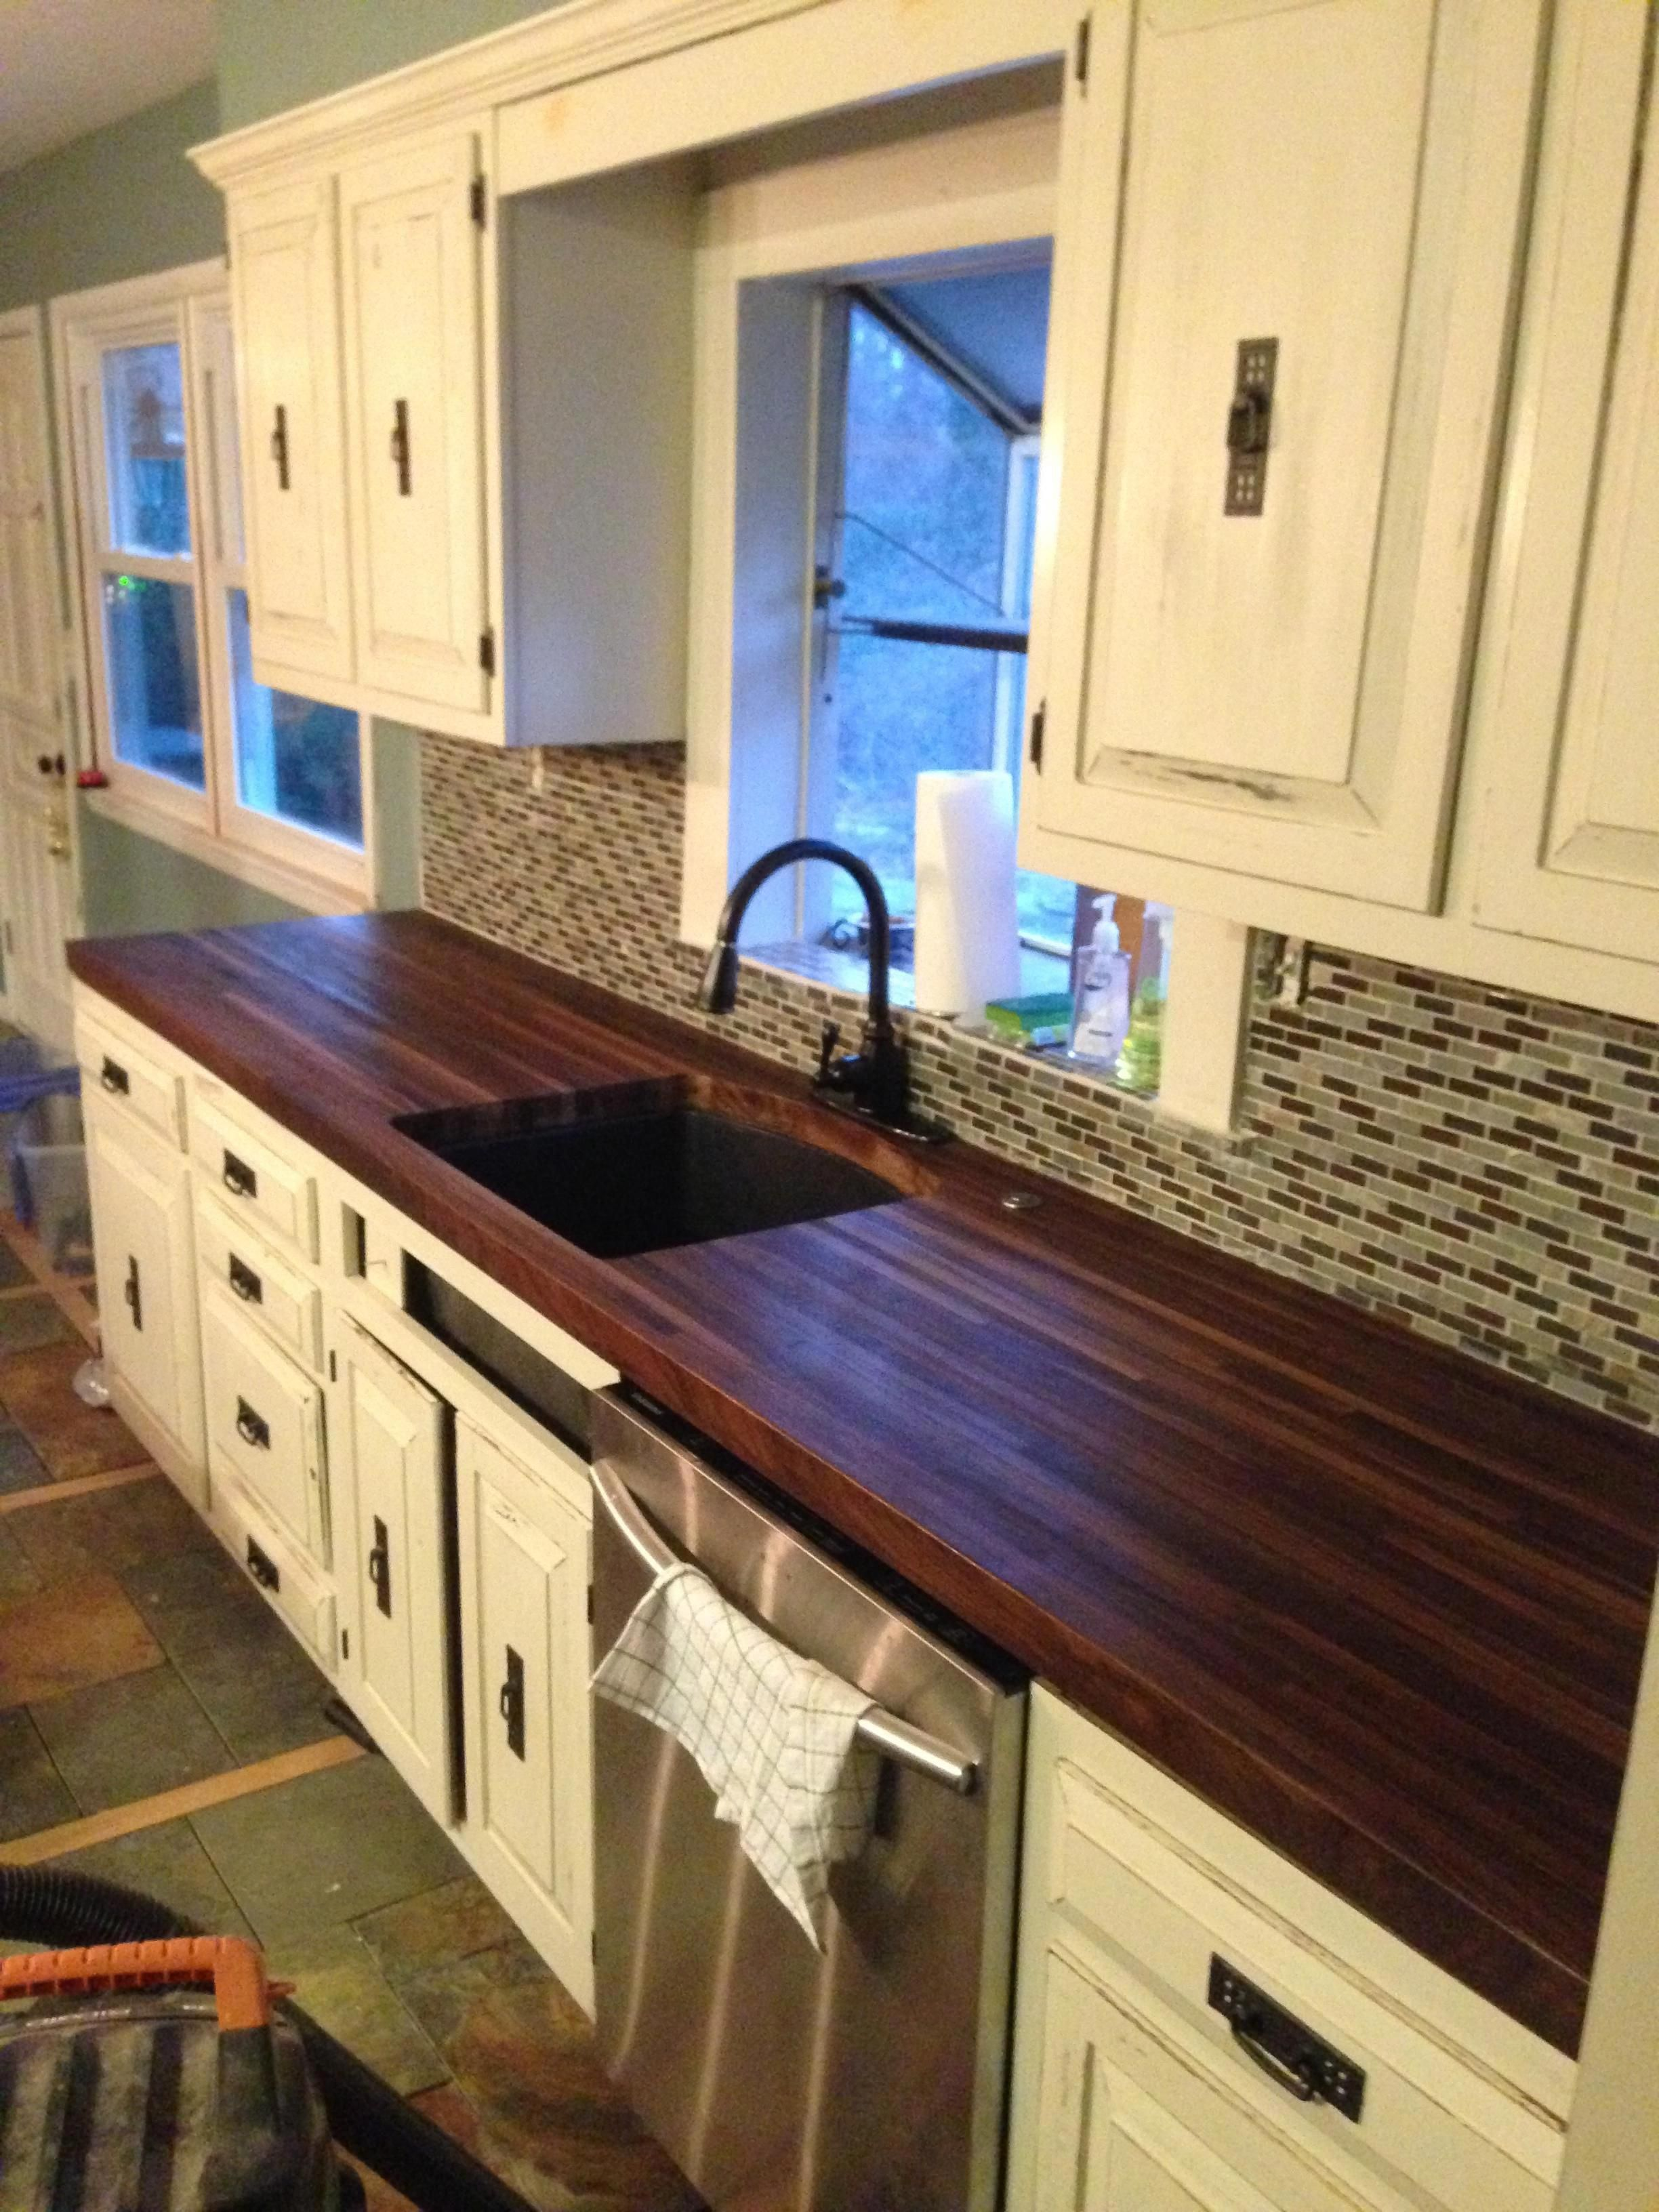 Holzarbeitsplatte Hygiene Diy Black Walnut Butcher Block Countertops To Replace That Awful